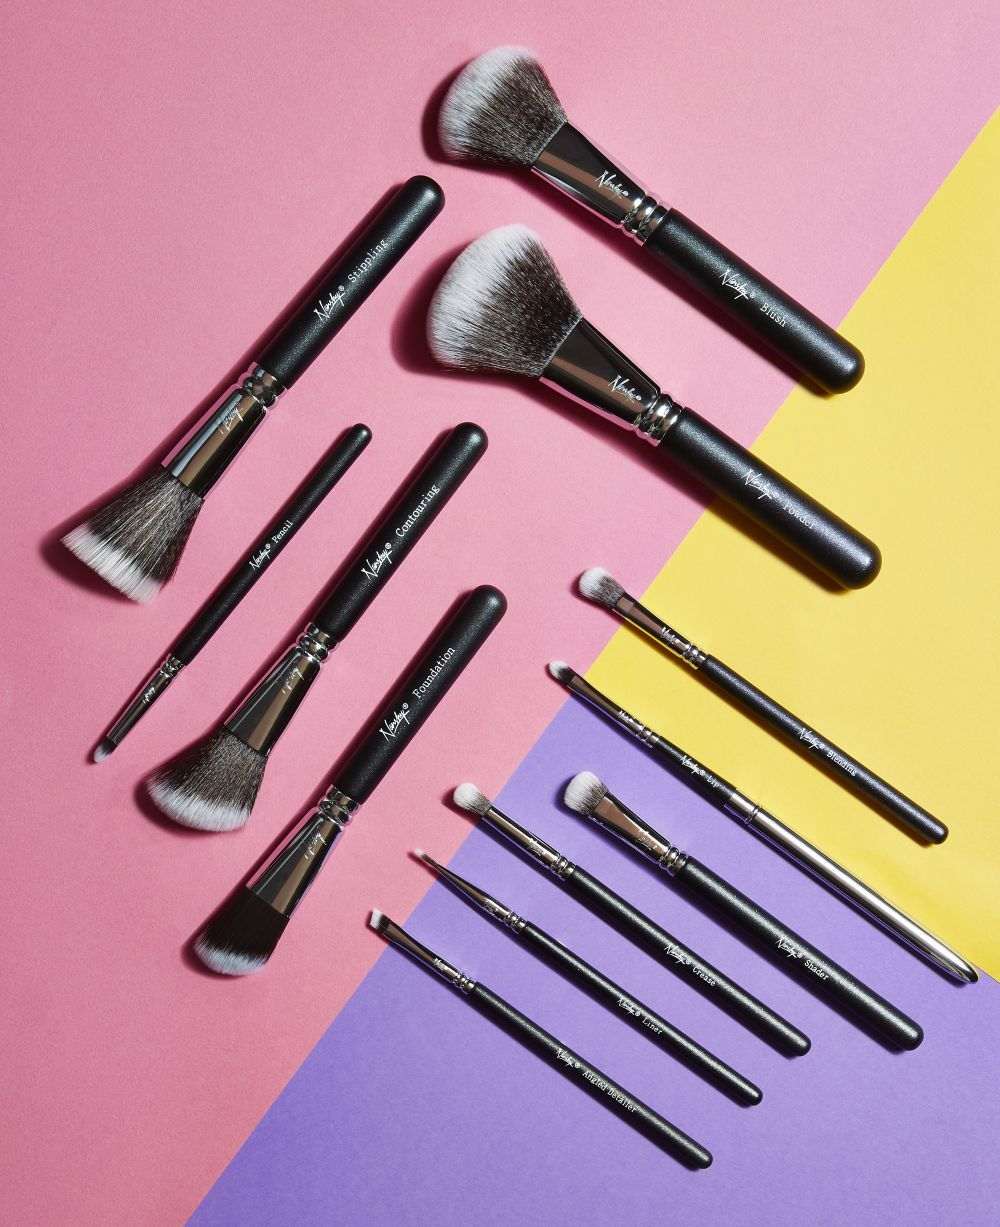 Have you heard about Nanshy vegan makeup brushes? They